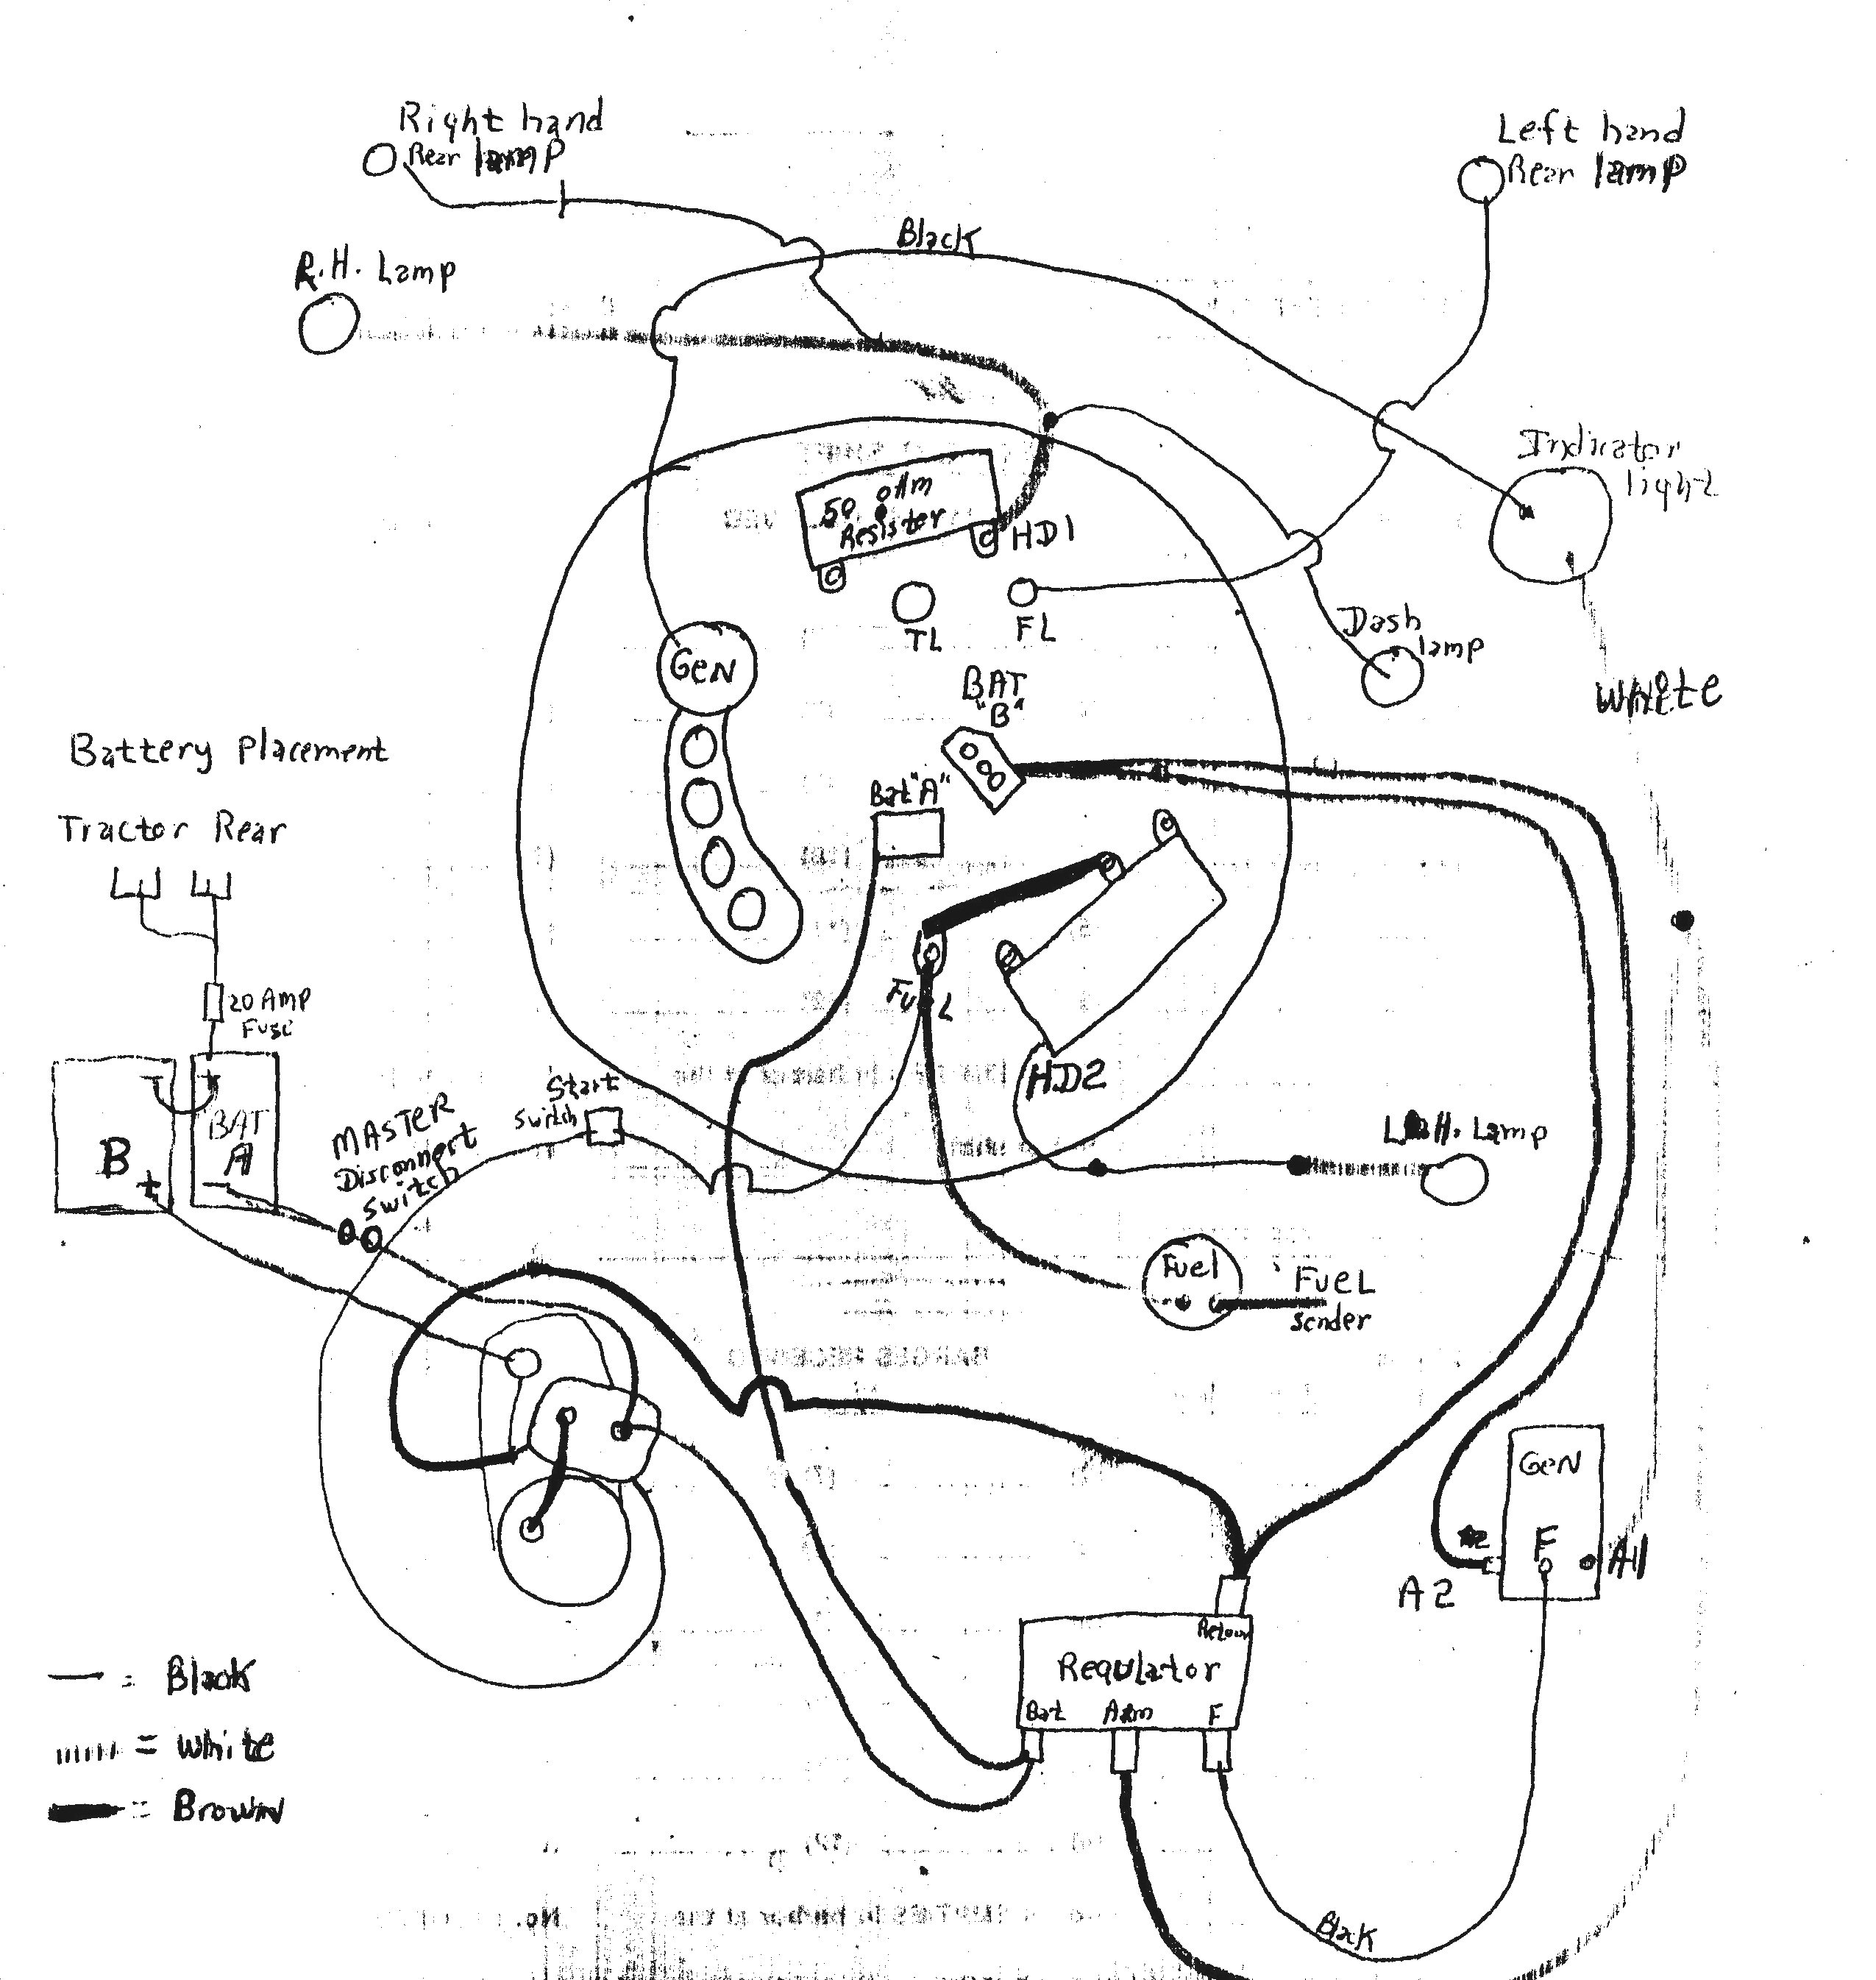 wiring diagram for john deere 4010 diesel